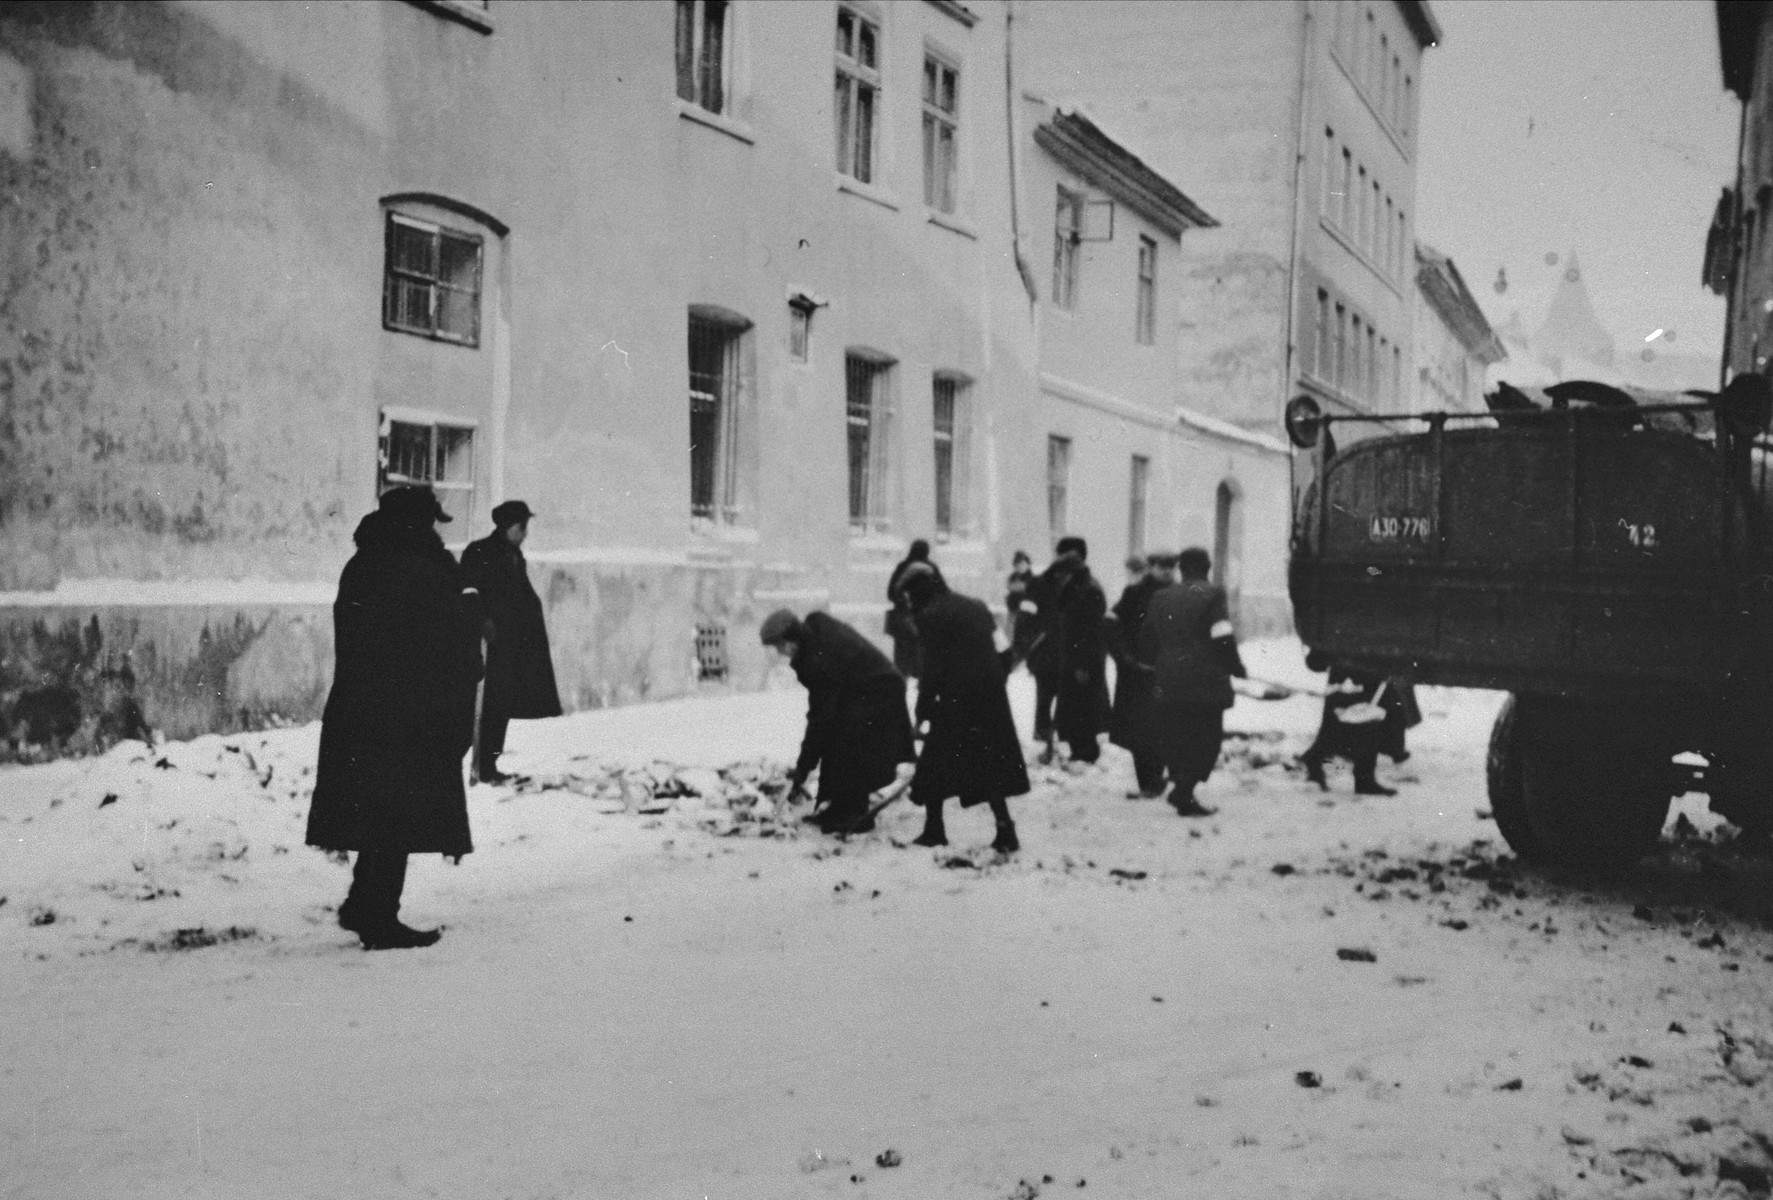 Jews are forced to clear snow from streets of Krakow.